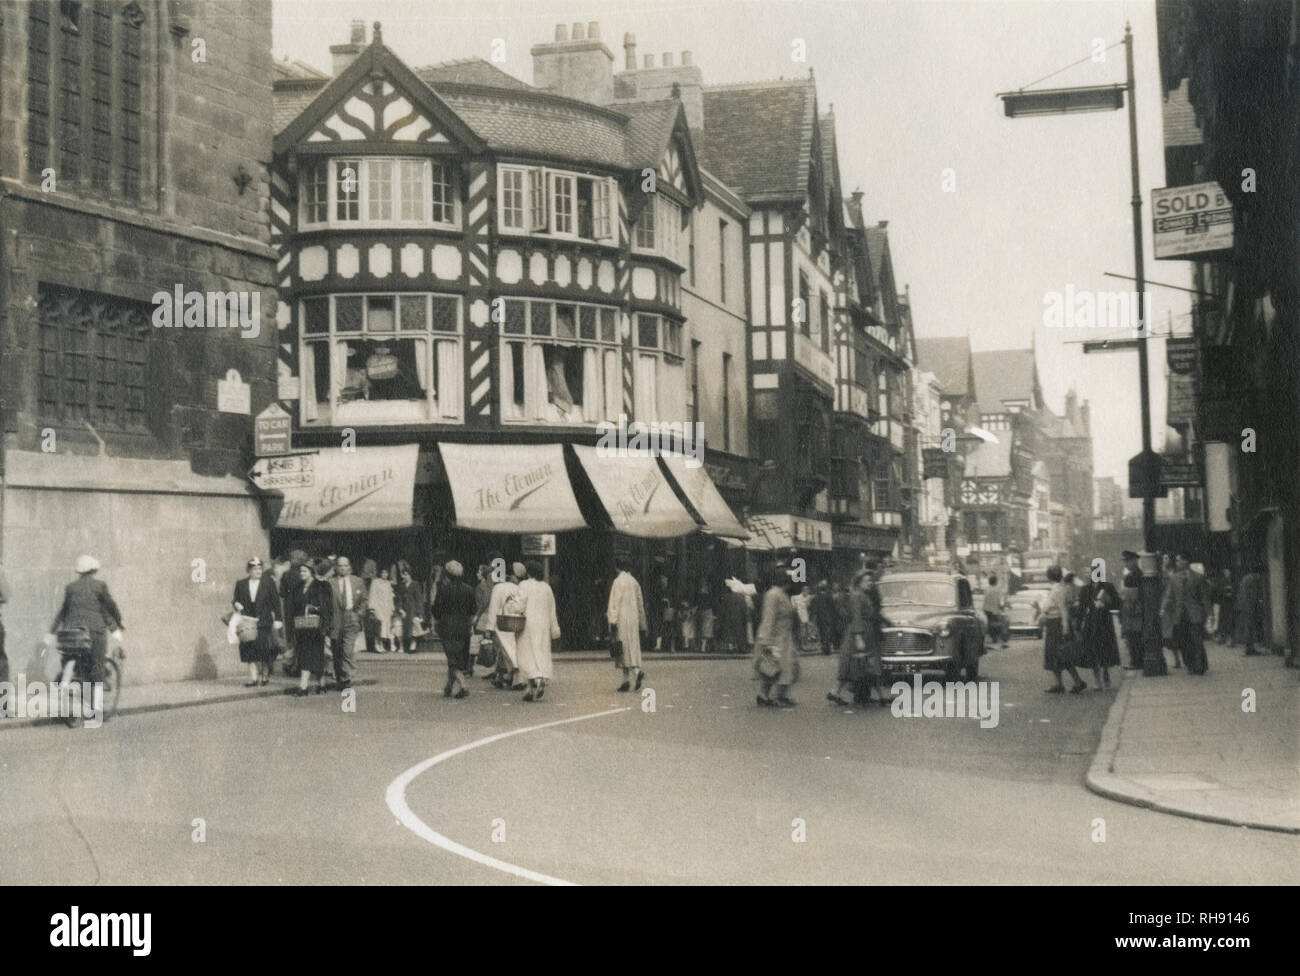 Antique c1950 photograph, The Etonian clothiers at 3b Eastgate St, Chester, England, UK. The photograph looks up Eastgate St from the Chester Cross, at the intersection with Northgate St (left) and Bridge St (right). SOURCE: ORIGINAL PHOTOGRAPH. Stock Photo